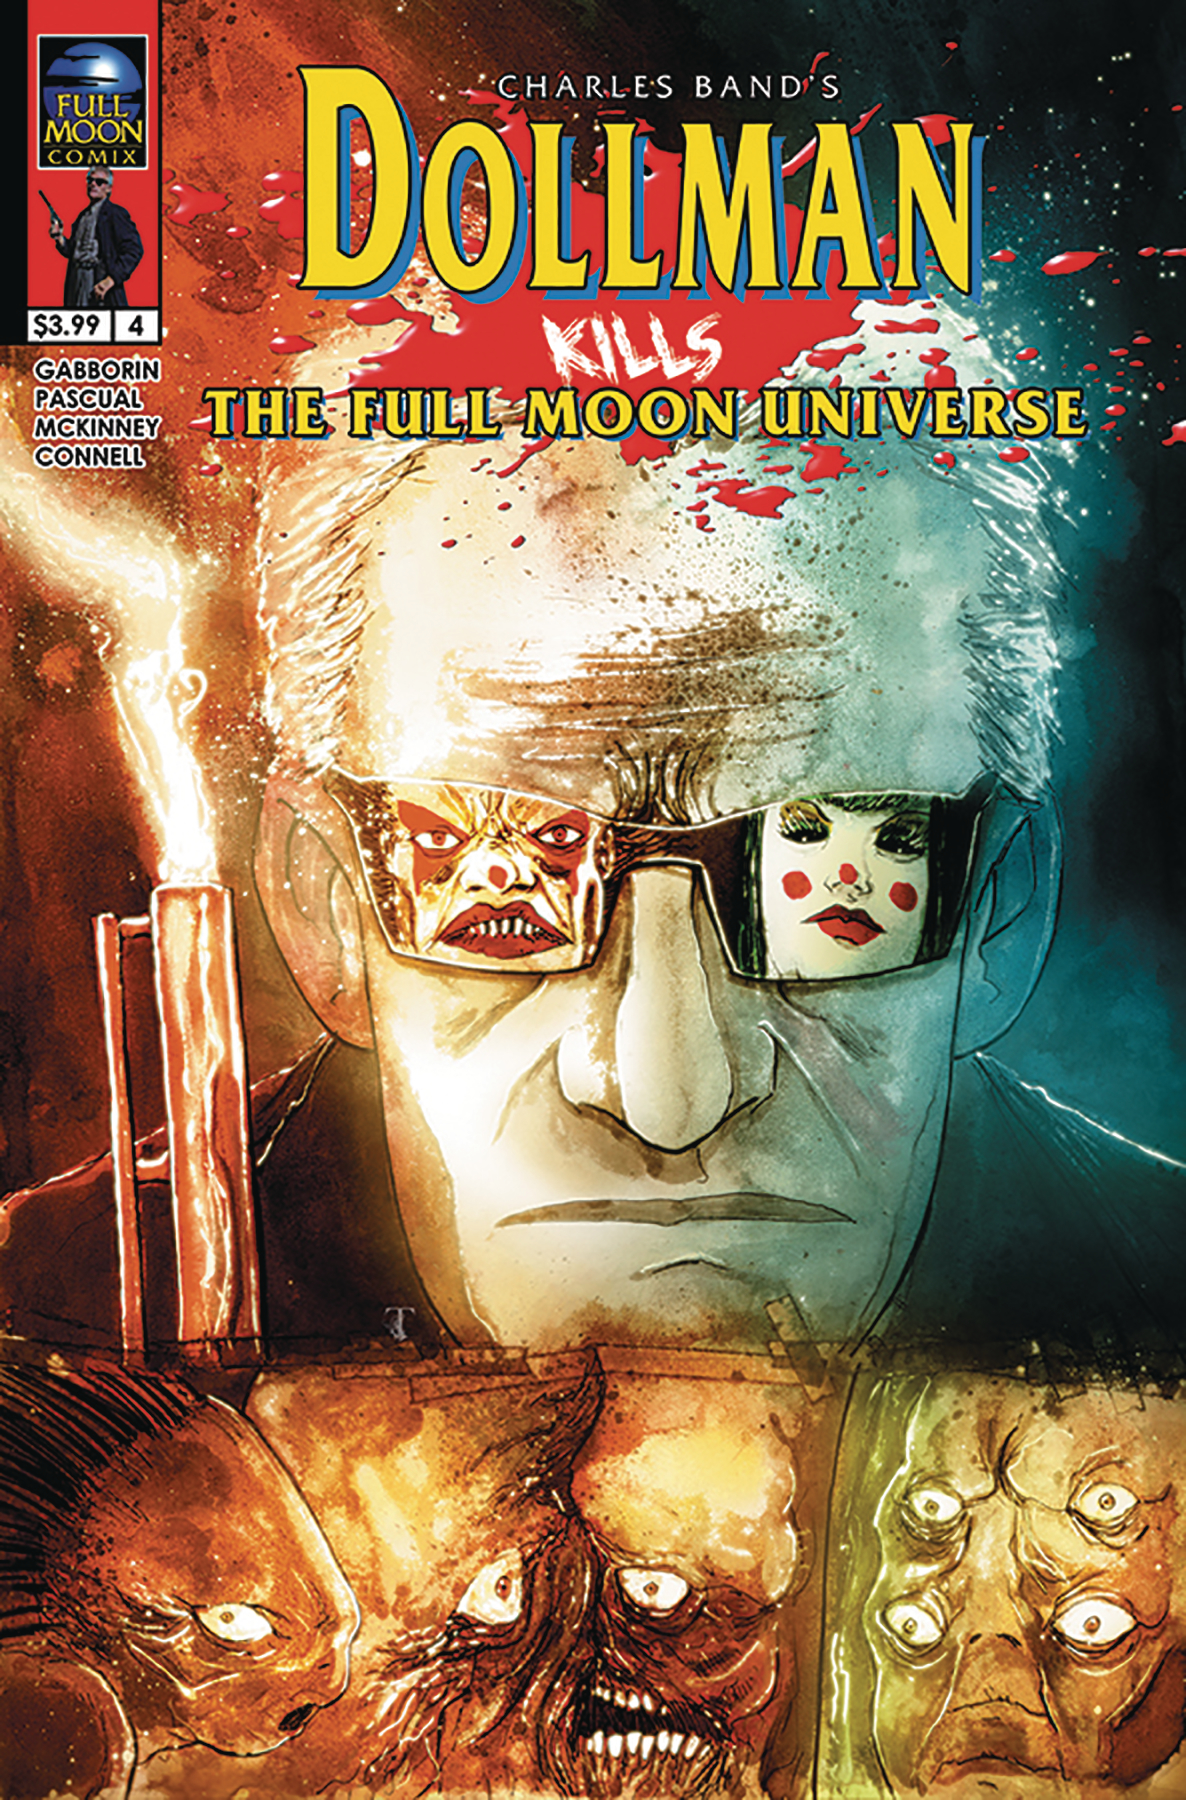 DOLLMAN KILLS THE FULL MOON UNIVERSE #4 CVR A TEMPLESMITH (M